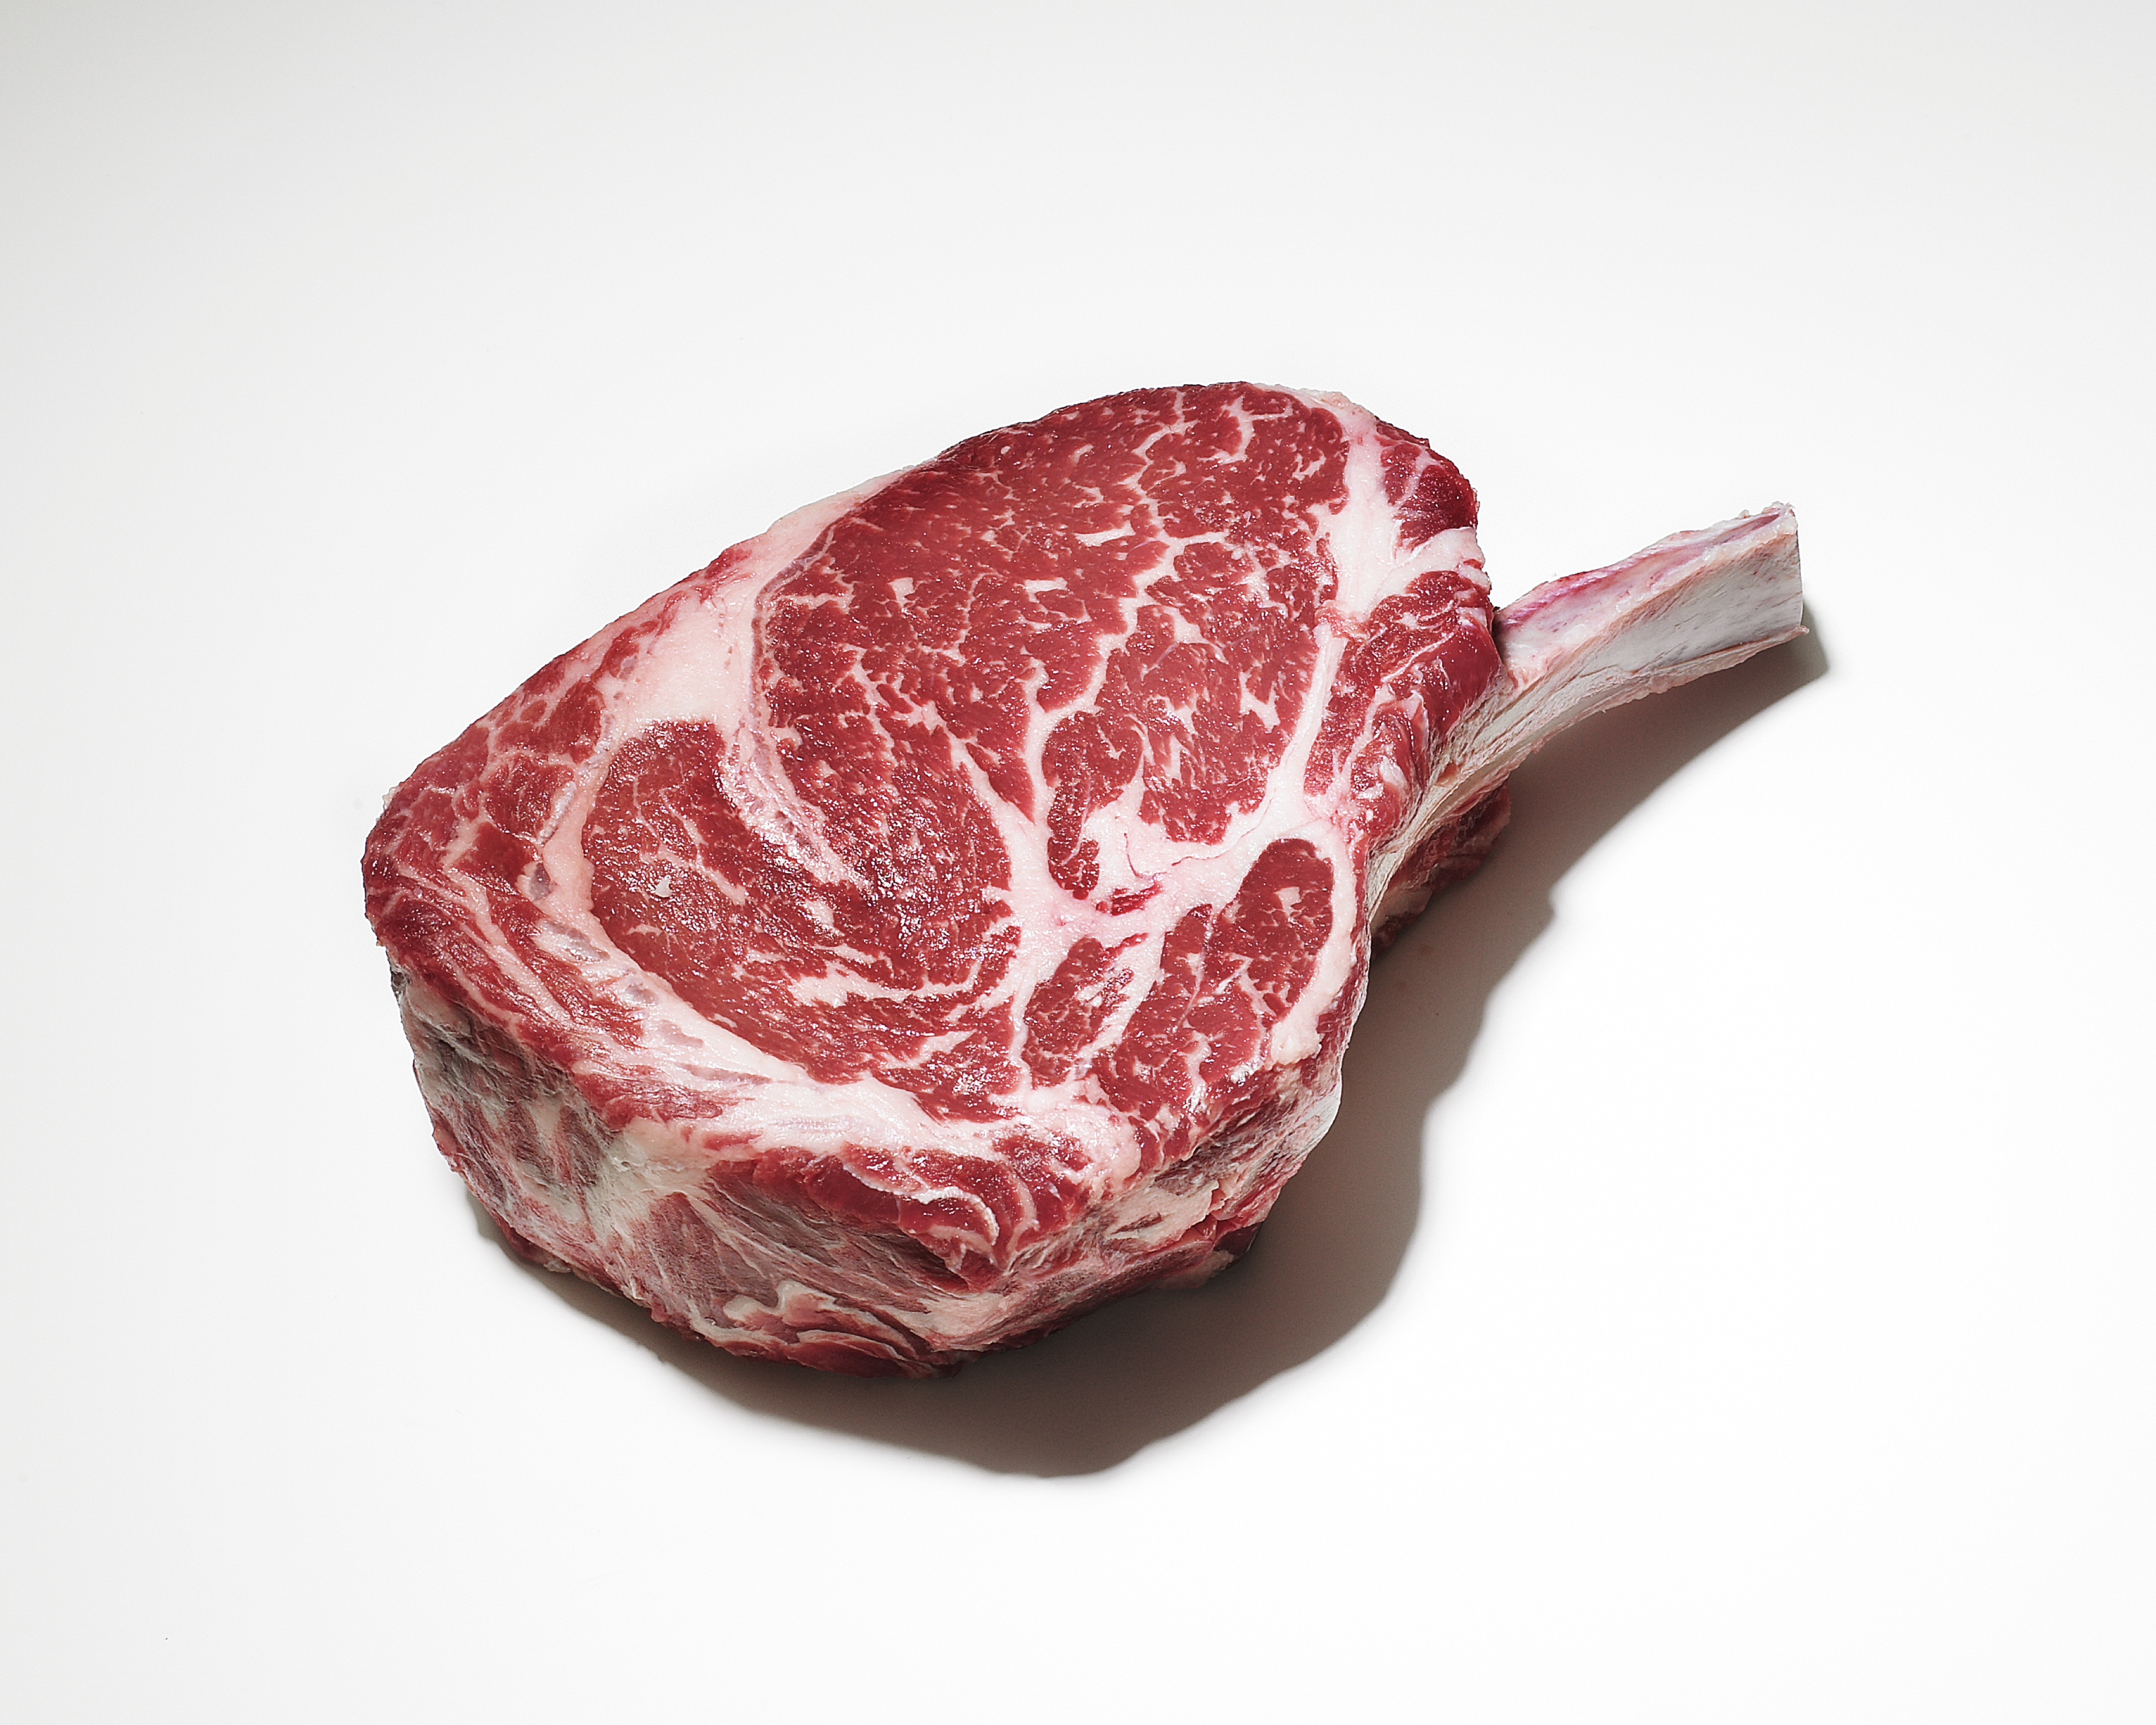 The Red Meat-Diverticulitis Connection